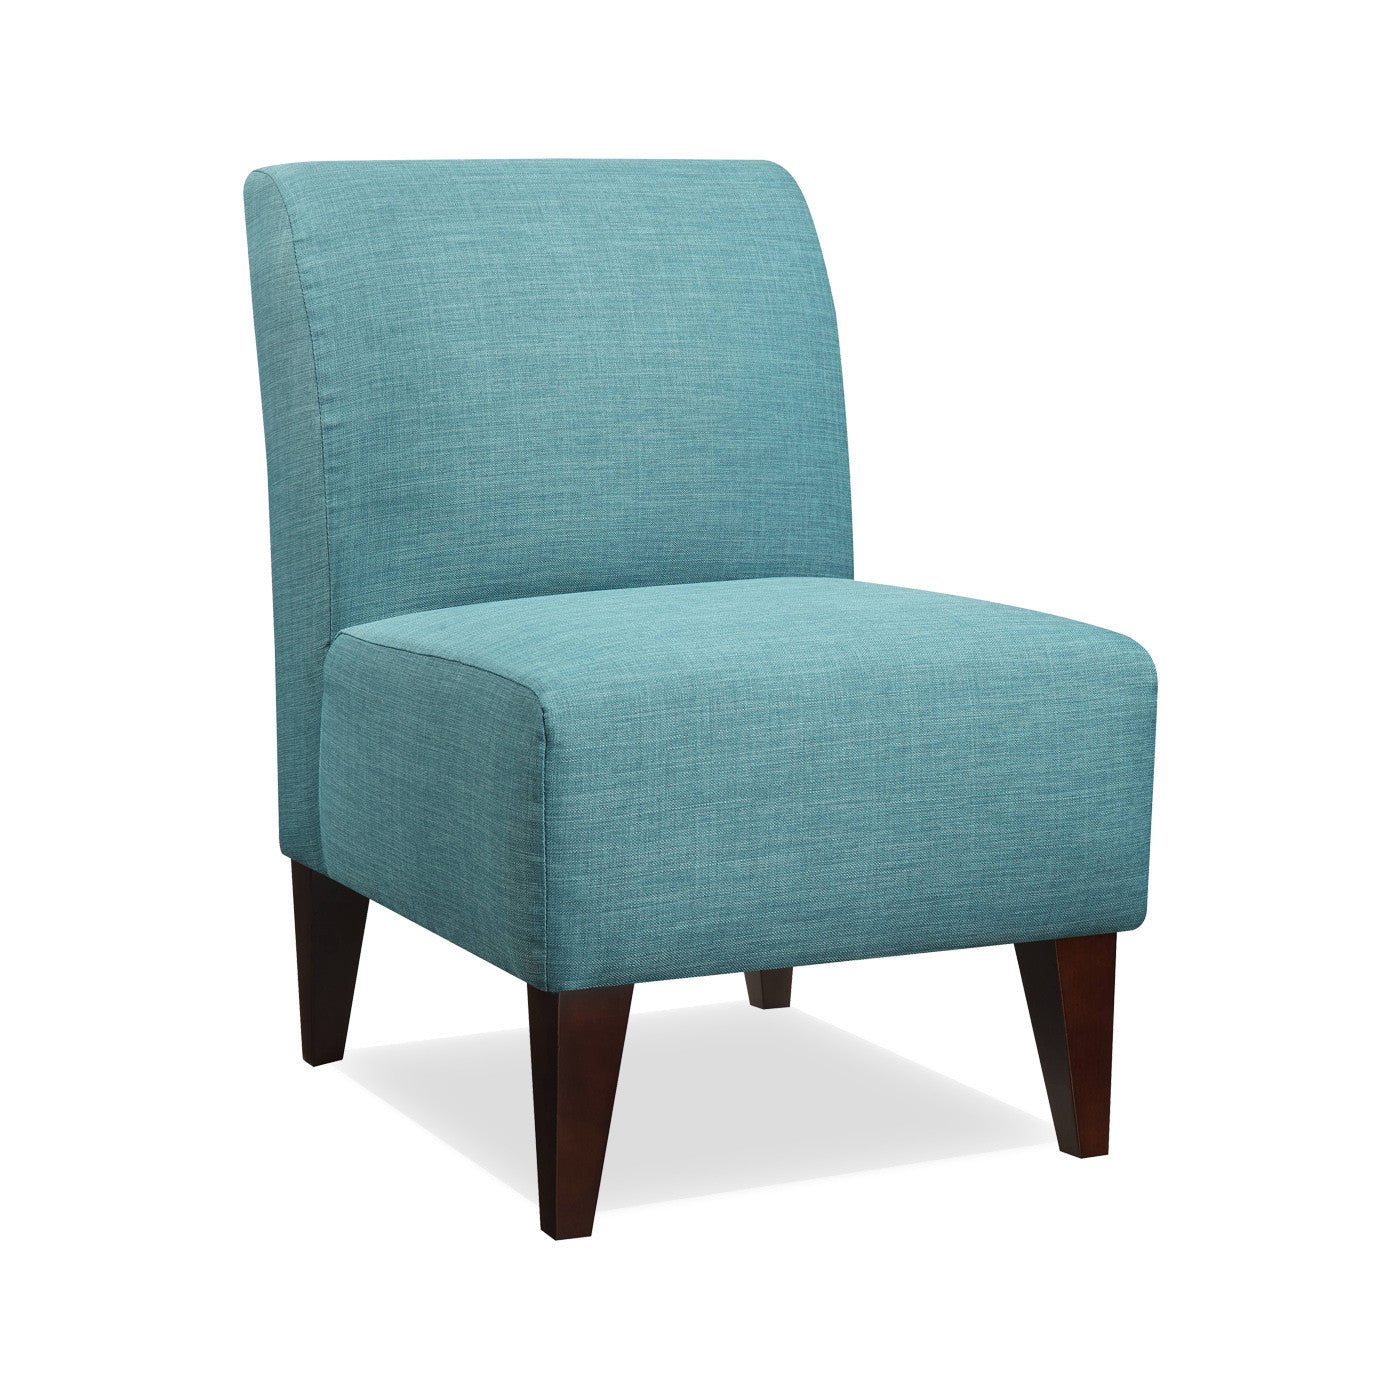 Westin accent chair teal shoppingscanner for Small teal chair